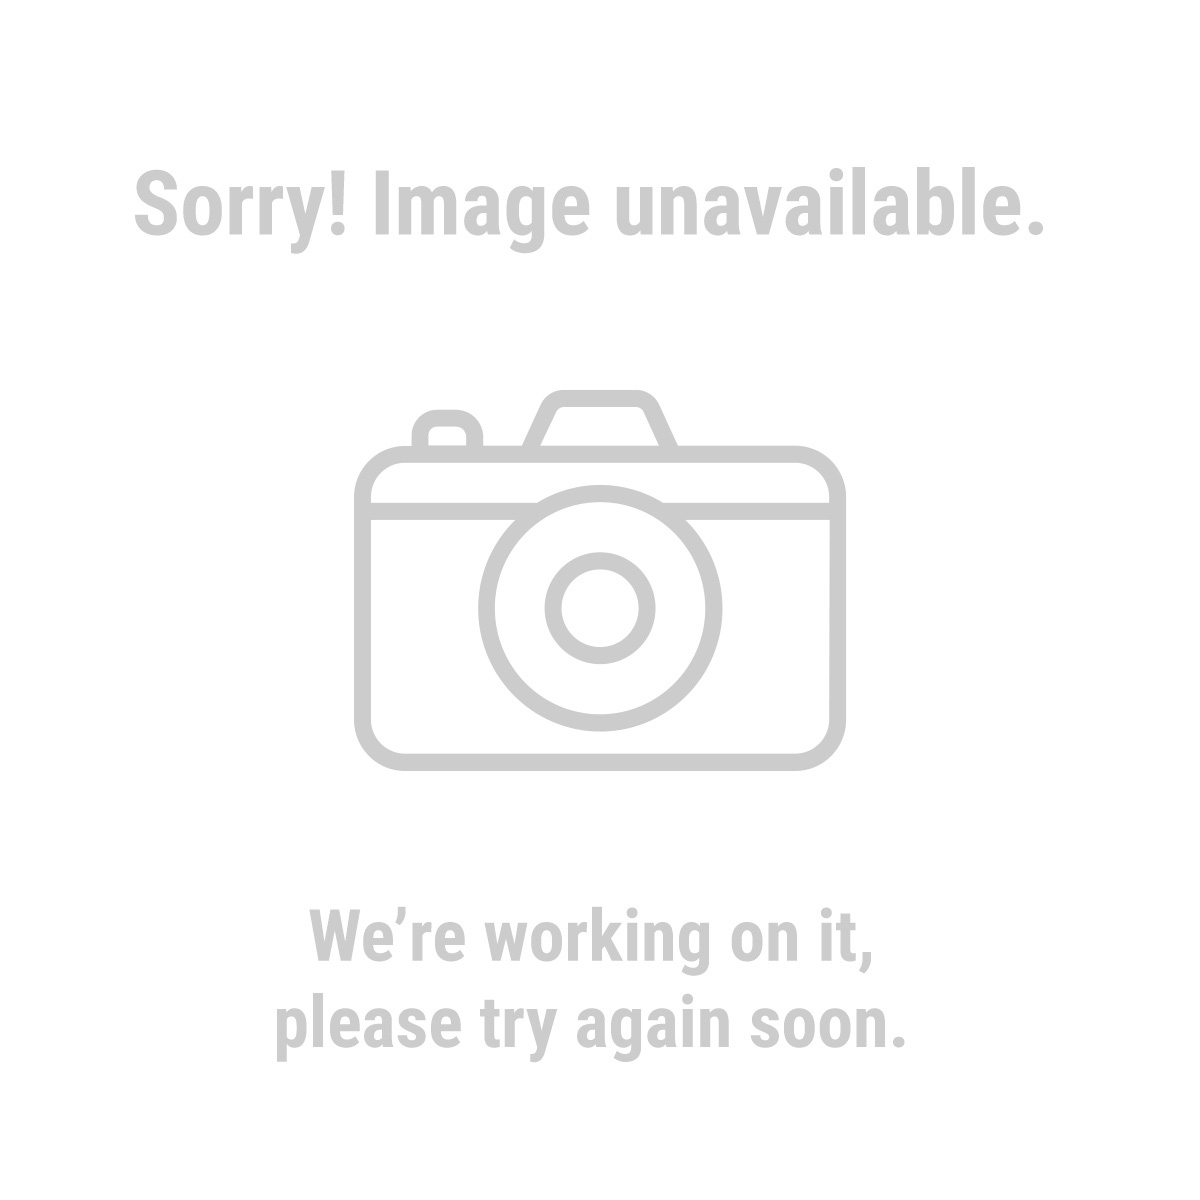 Metal Cutting Vertical Band Saw Off Topic Discussion Forum